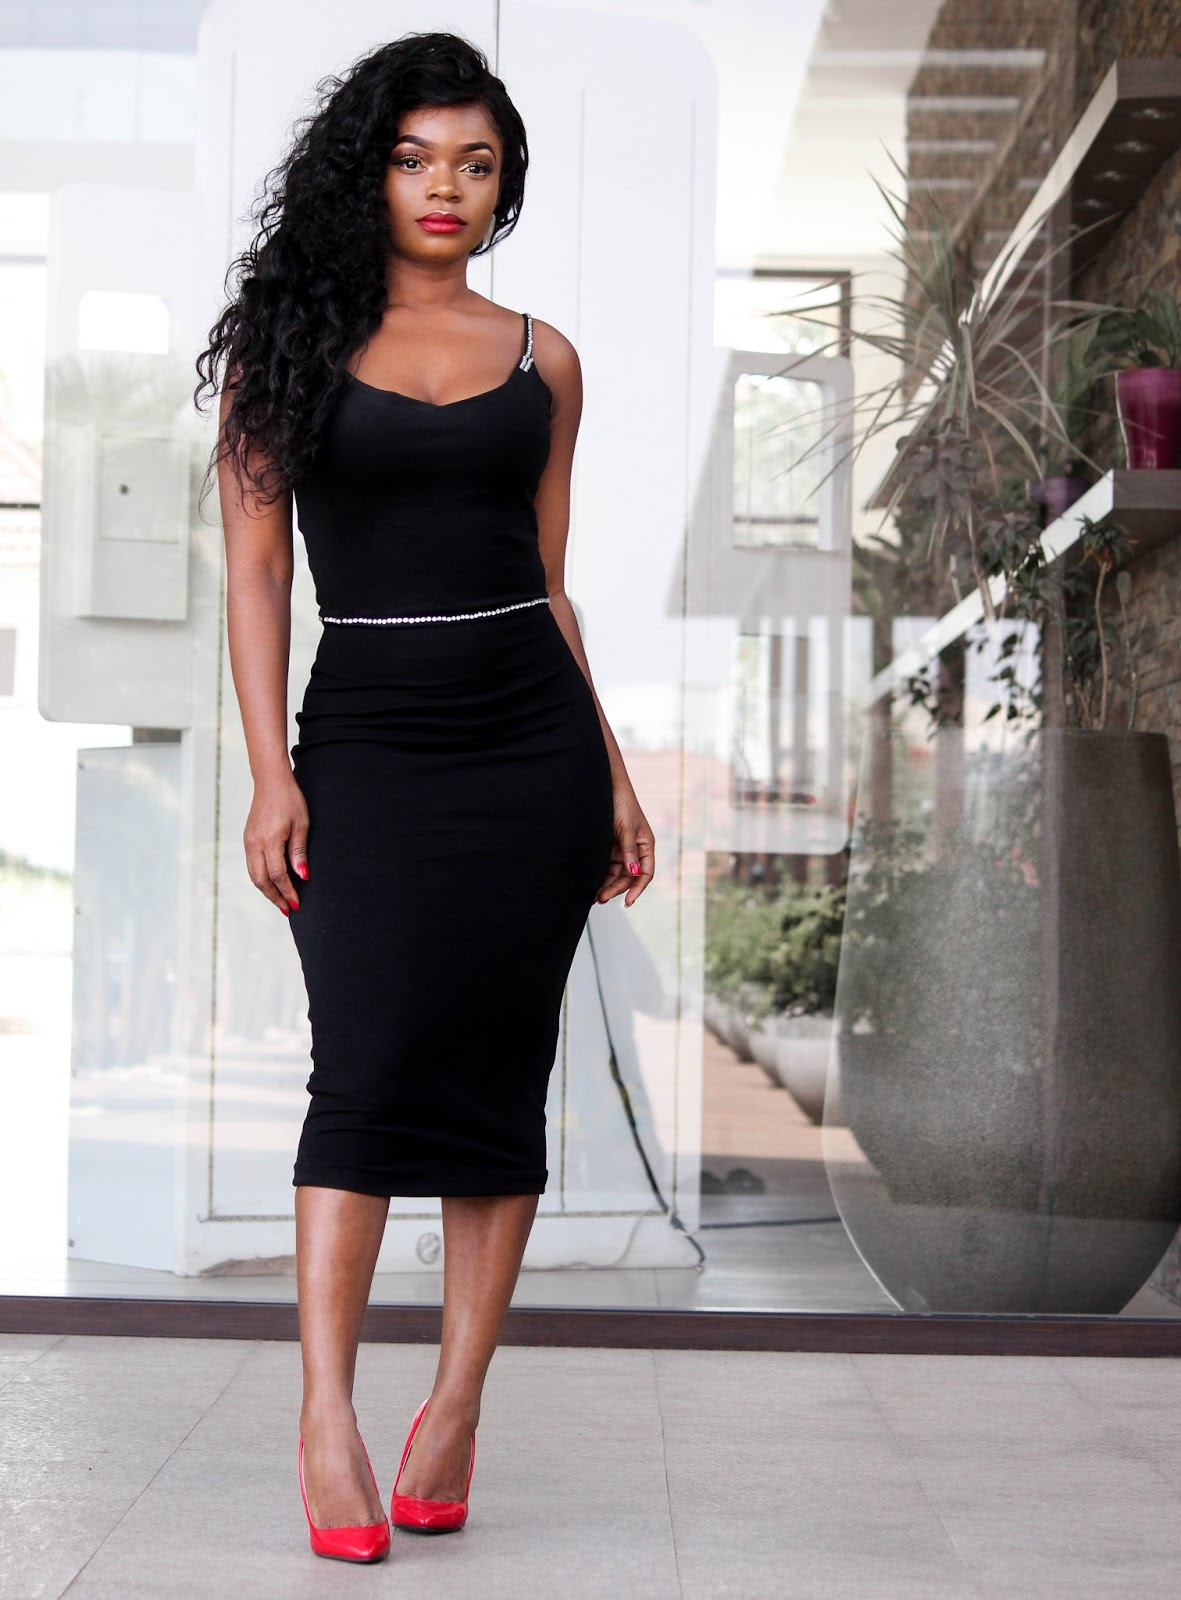 BLACK BODYCON DRESS - Black Bodycon Dress with stone detailing from Porshher